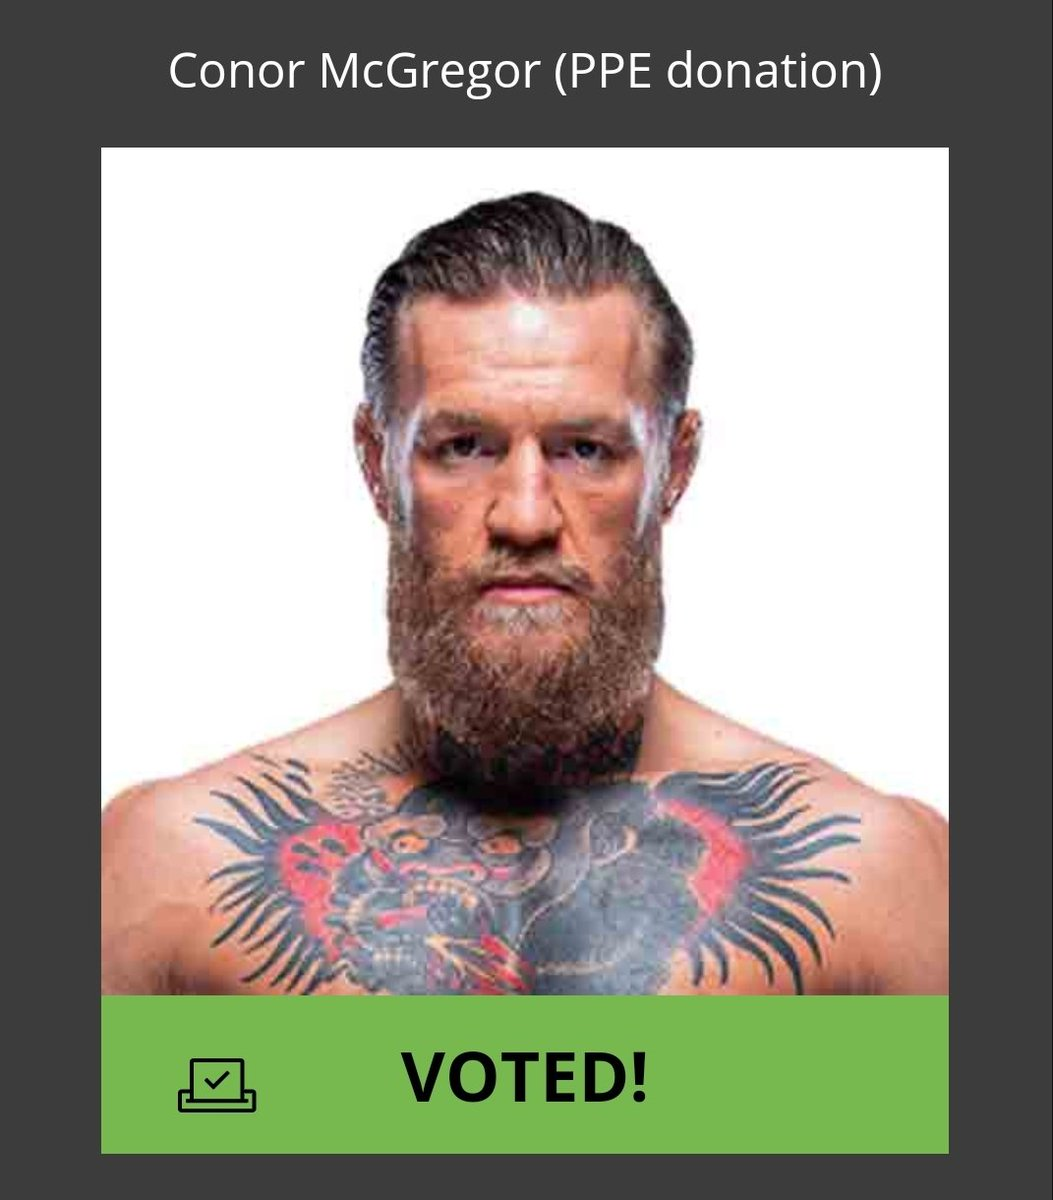 My votes are in for @Maclifeofficial and @TheNotoriousMMA. During a worldwide pandemic that's affected us all in one way or another, Conor still found the time to help his country with vast amounts of PPE donations to Ireland... Special people step up to the plate. 🇮🇪👊🏻 https://t.co/X7xlt7m0iS